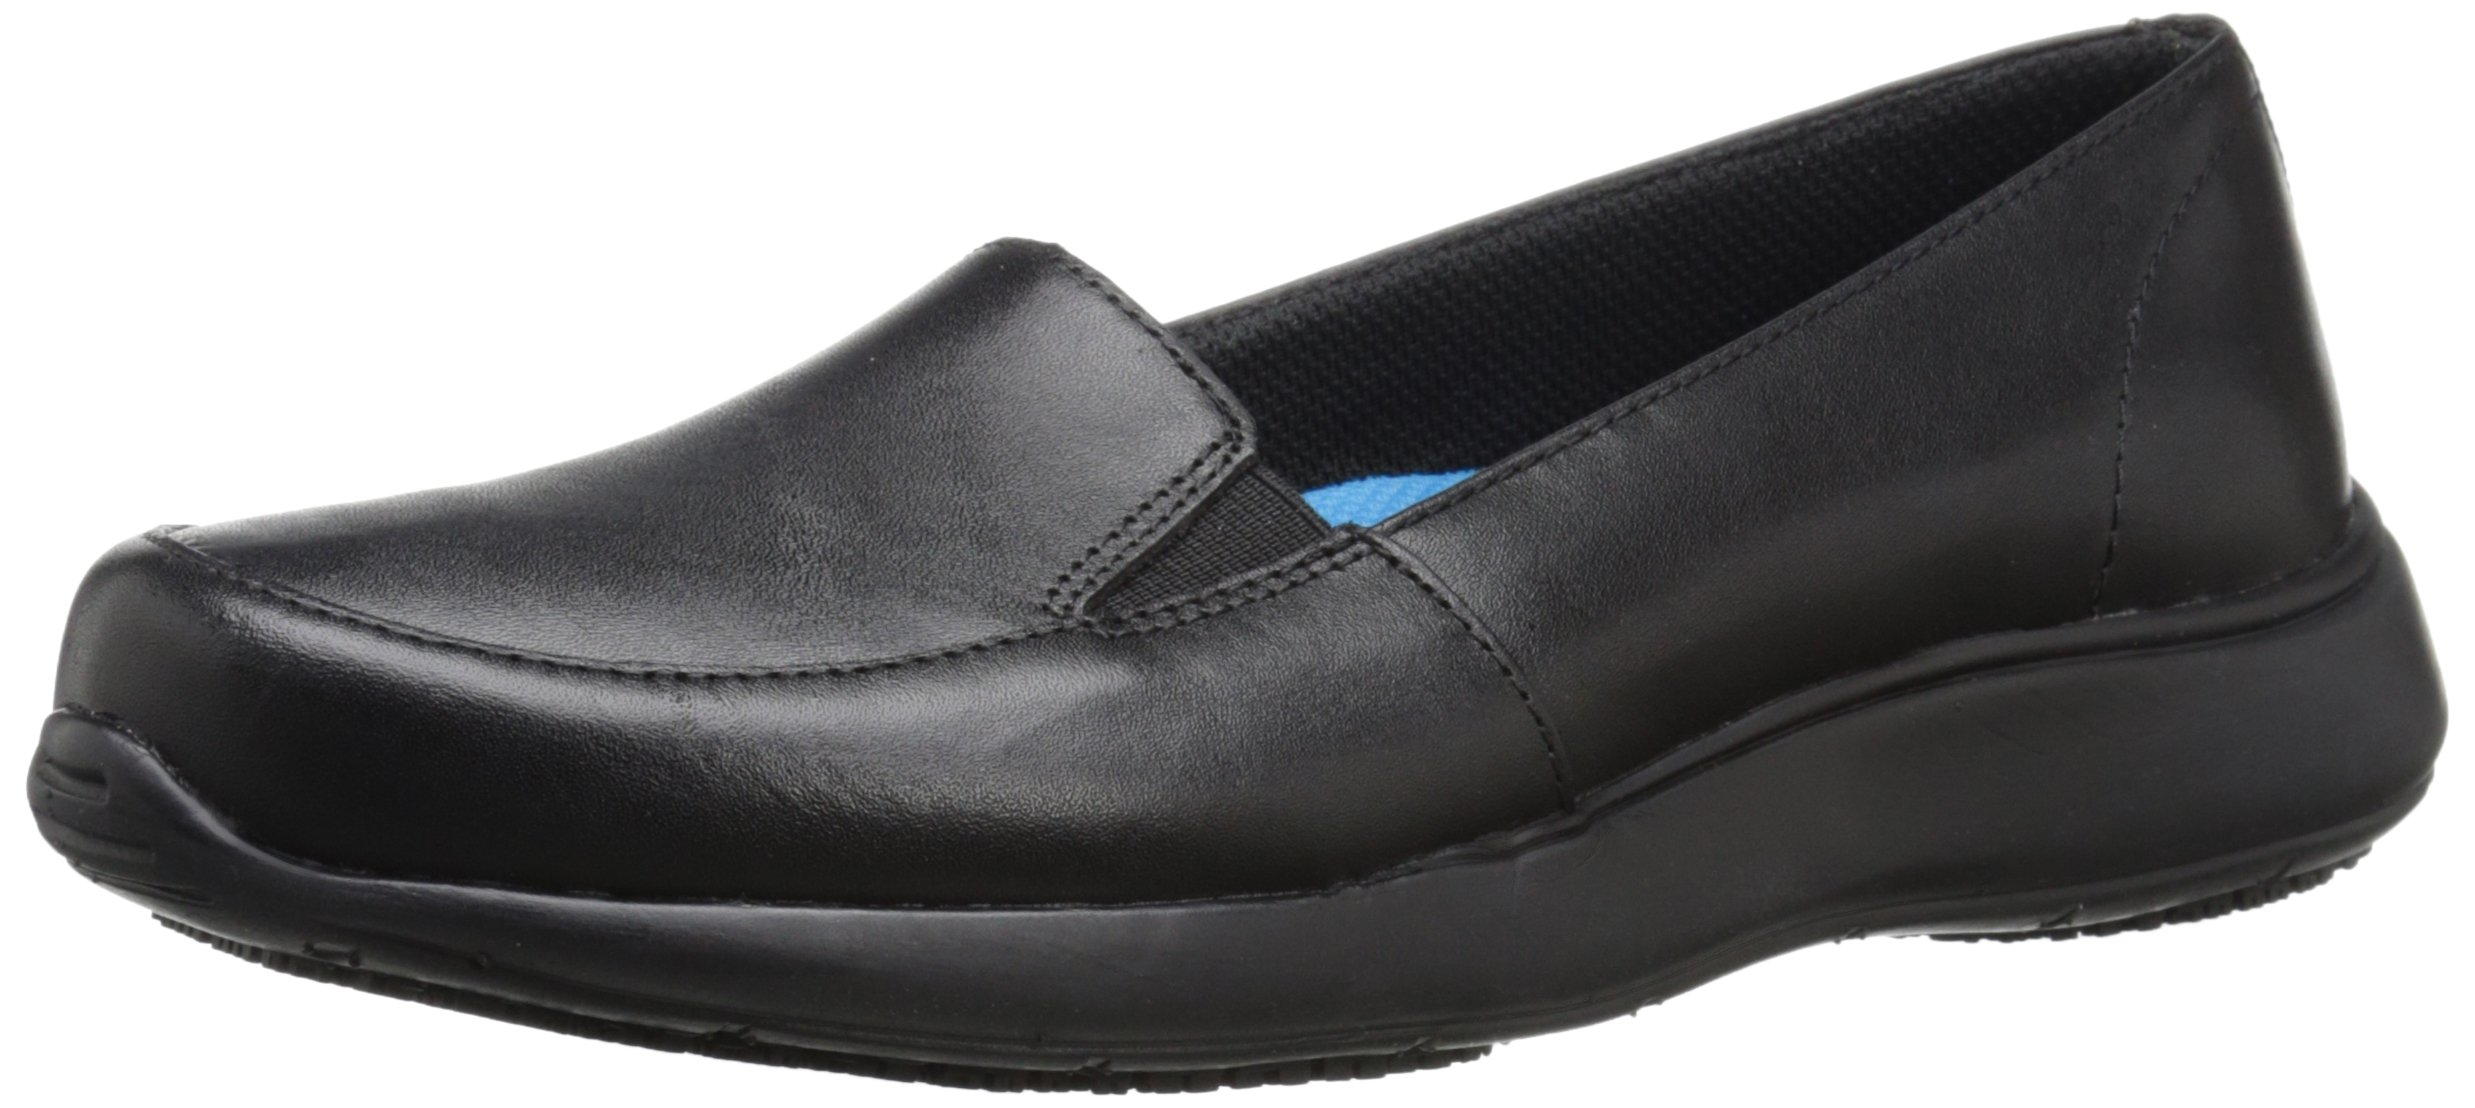 Dr. Scholl's Women's Lauri Slip On, Black, 8 M US by Dr. Scholl's Shoes (Image #1)